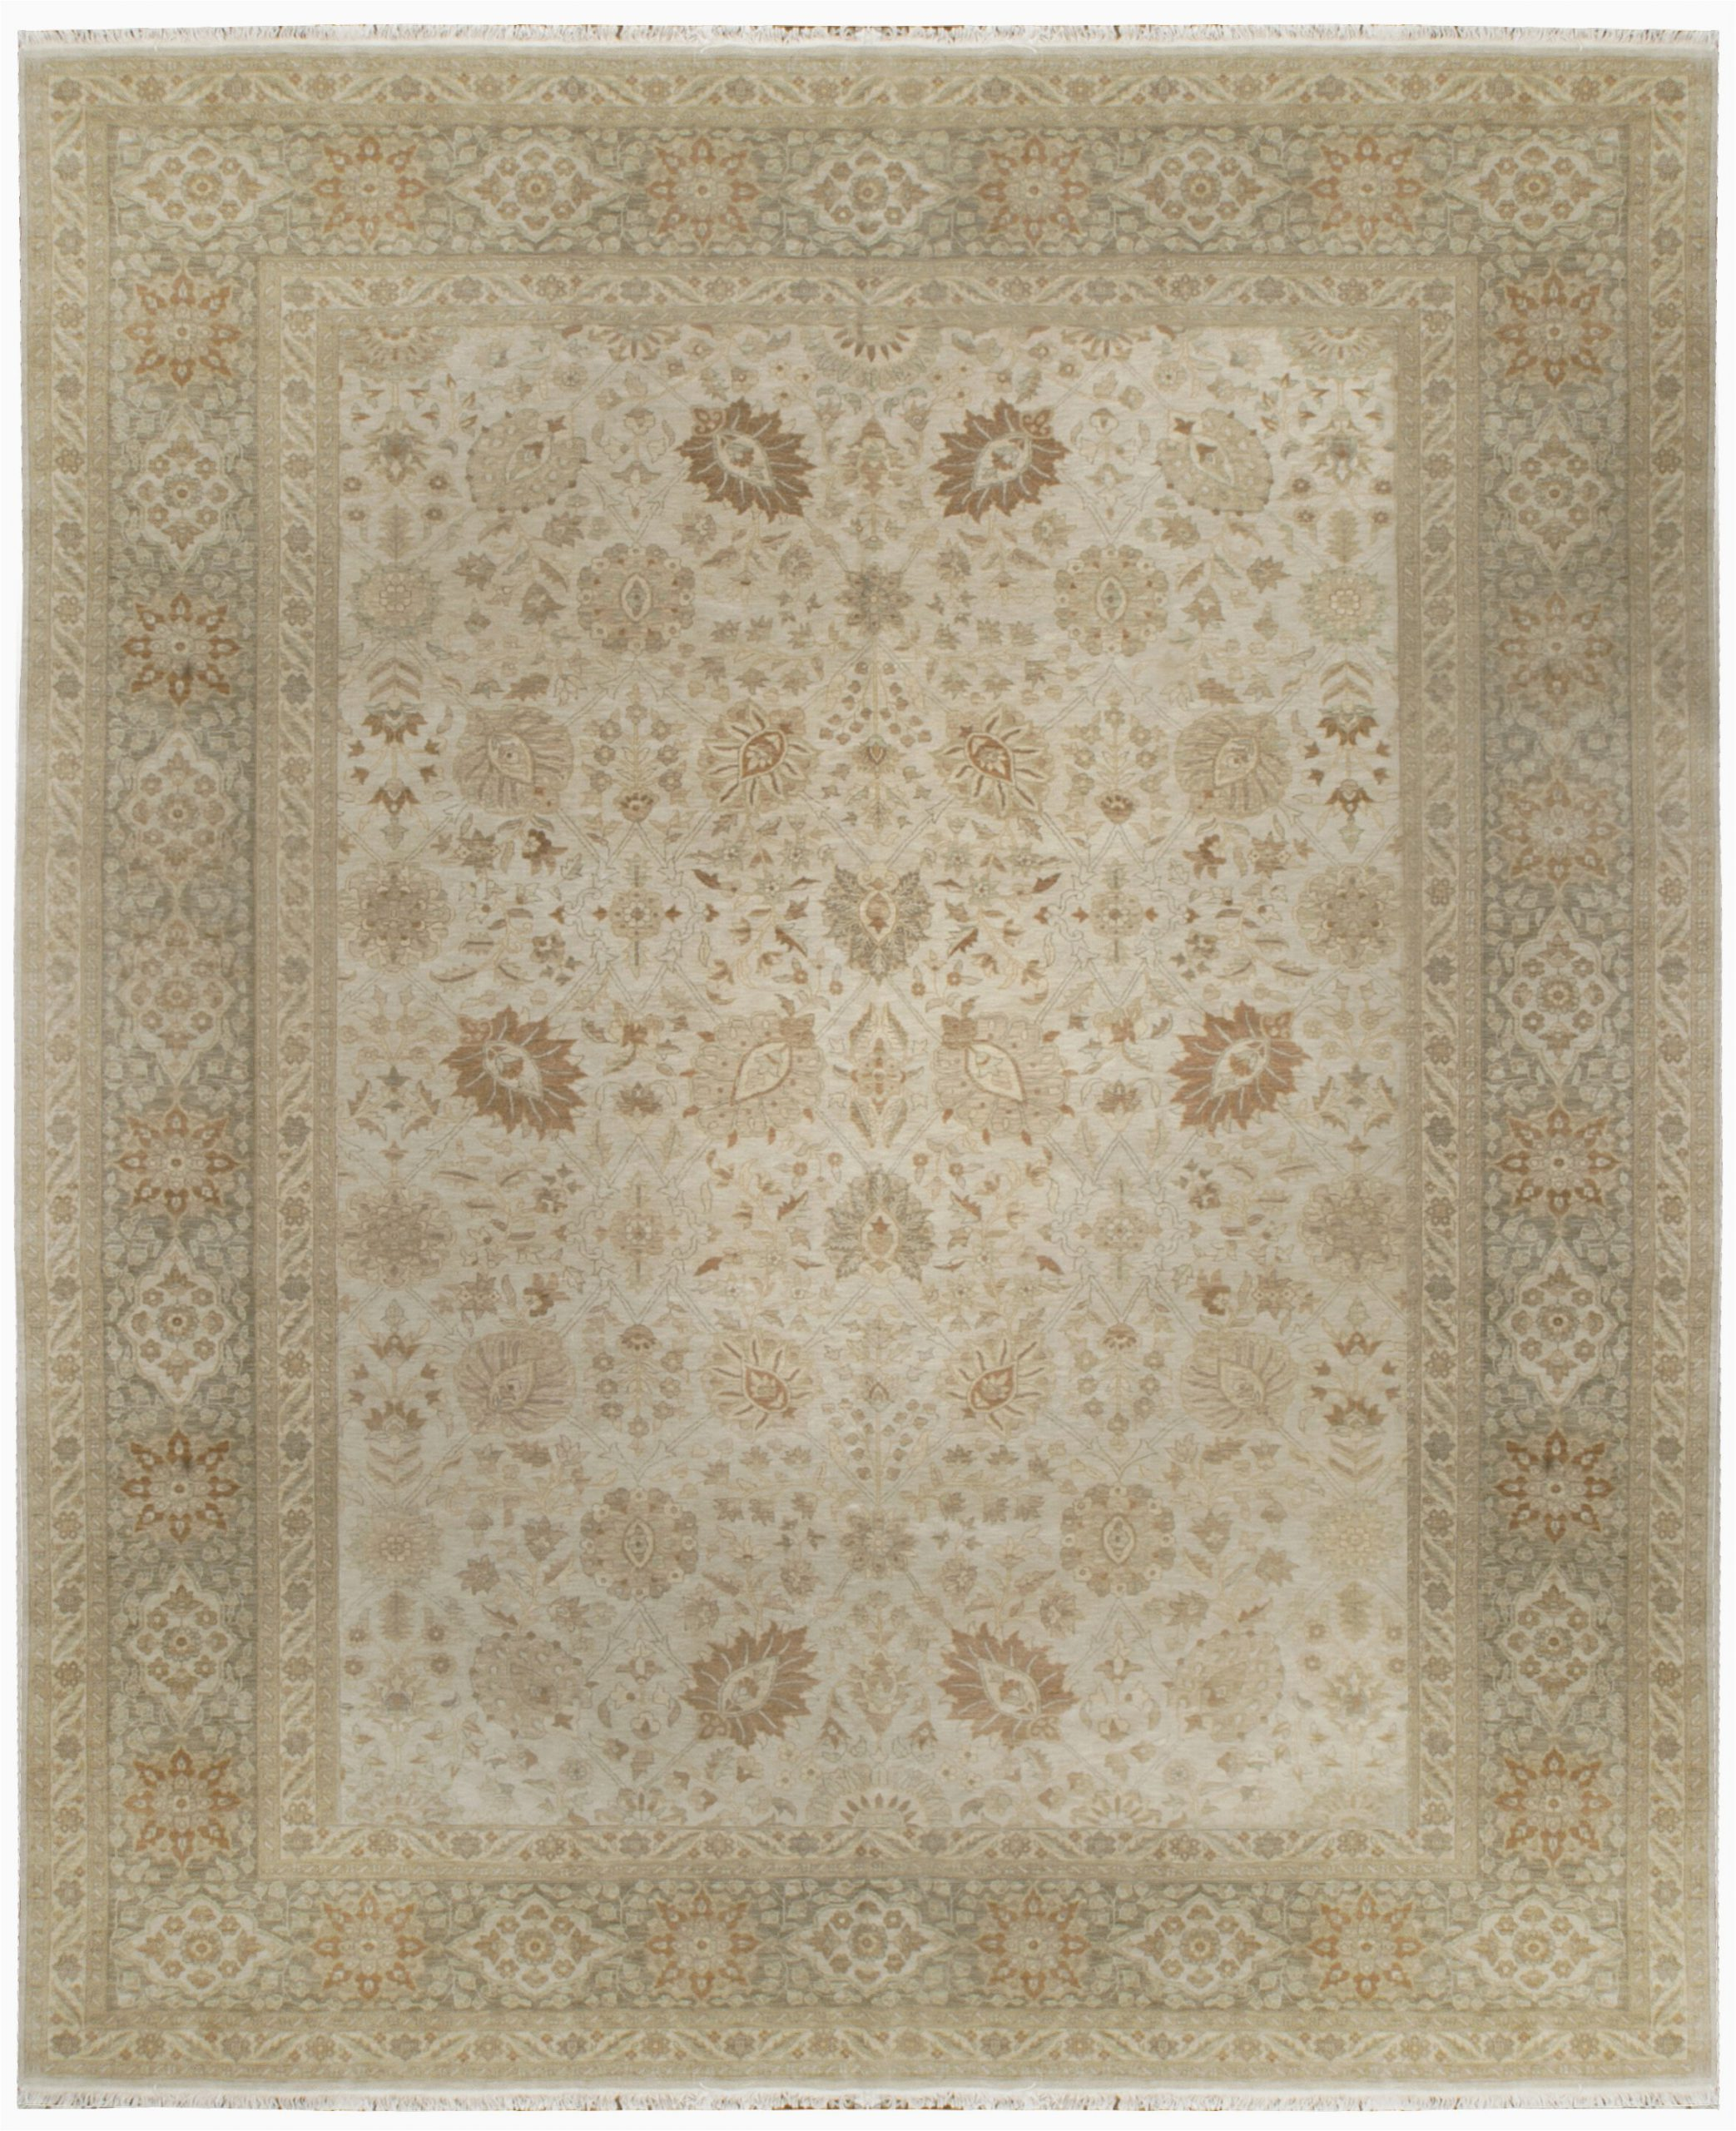 oakrugs by chelsea one of a kind hand knotted beige 12 x 146 wool area rug okrz1439